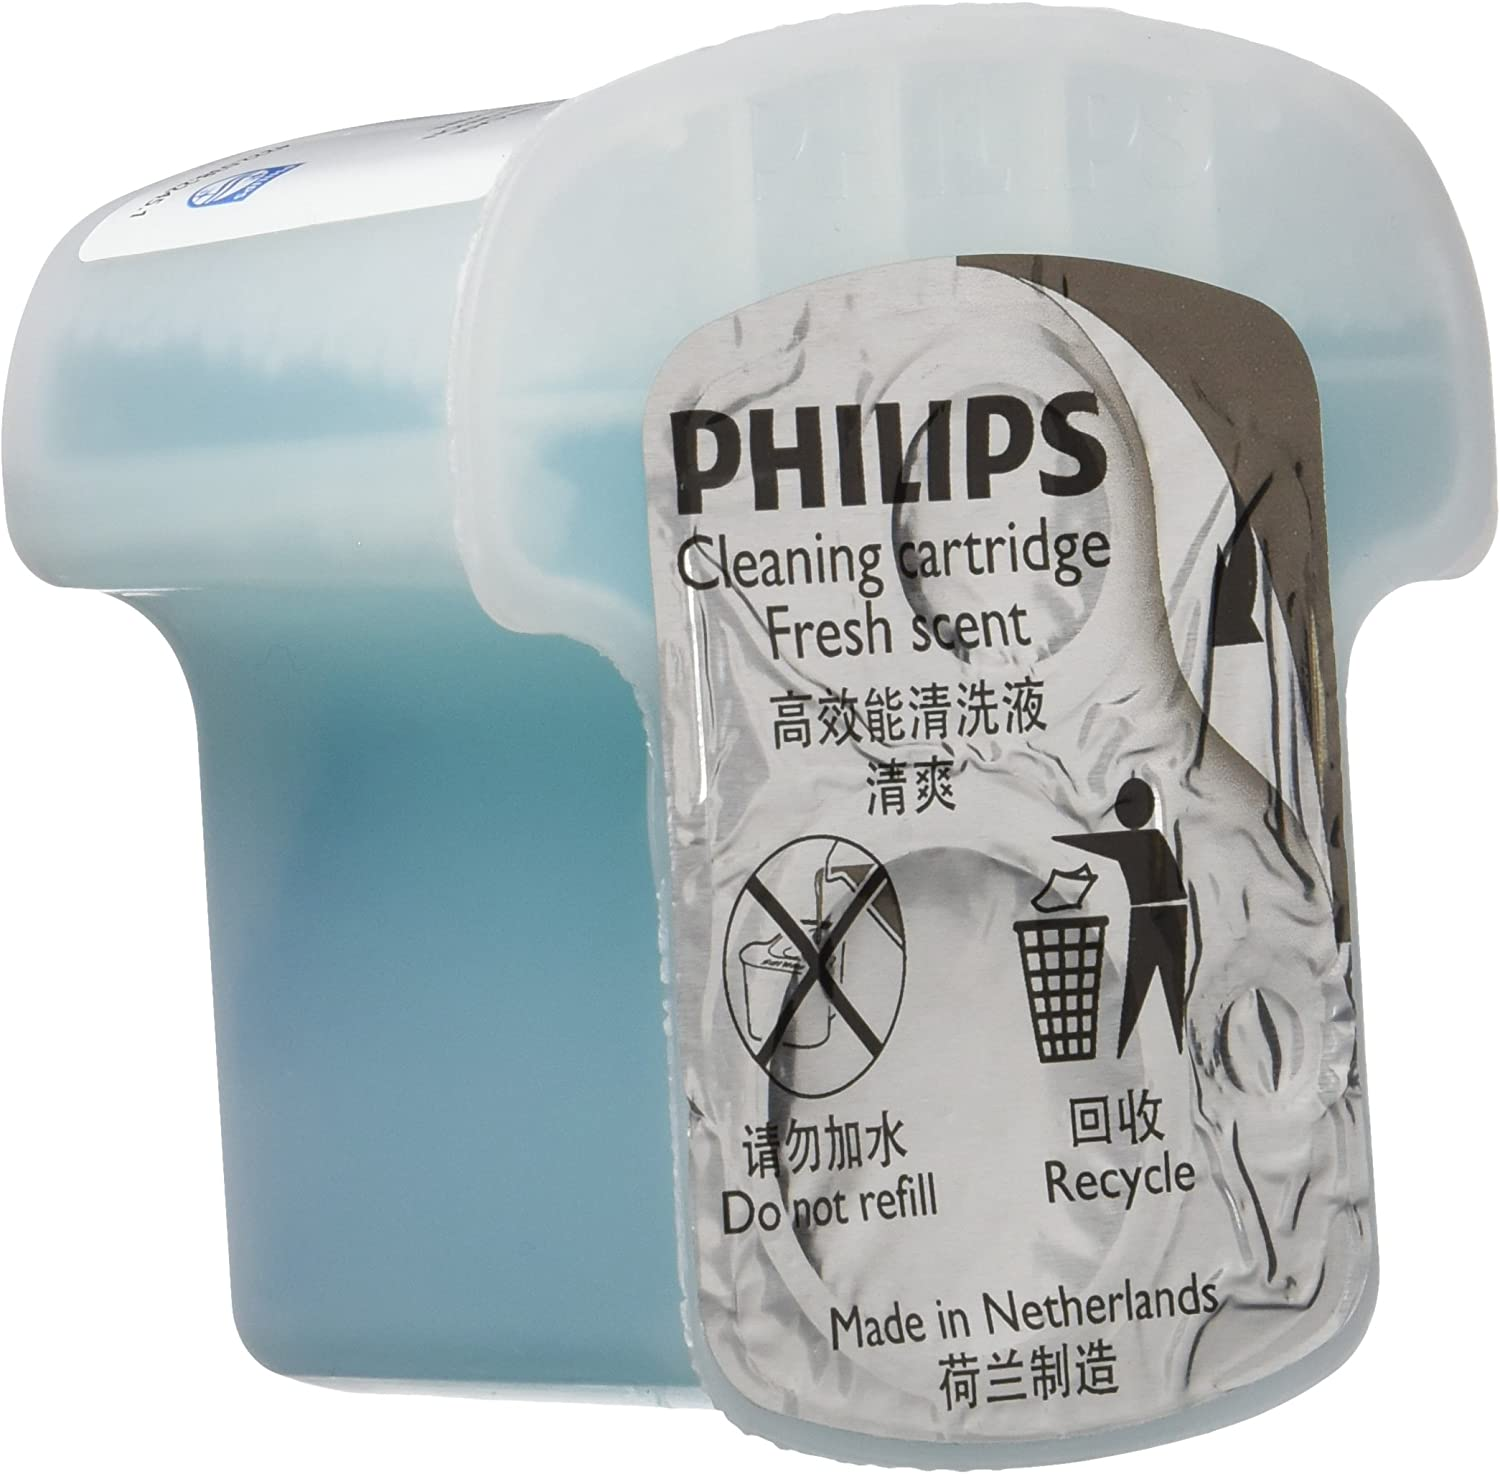 Philips Cleaning cartridge series 9000 1 pack Clean JC301